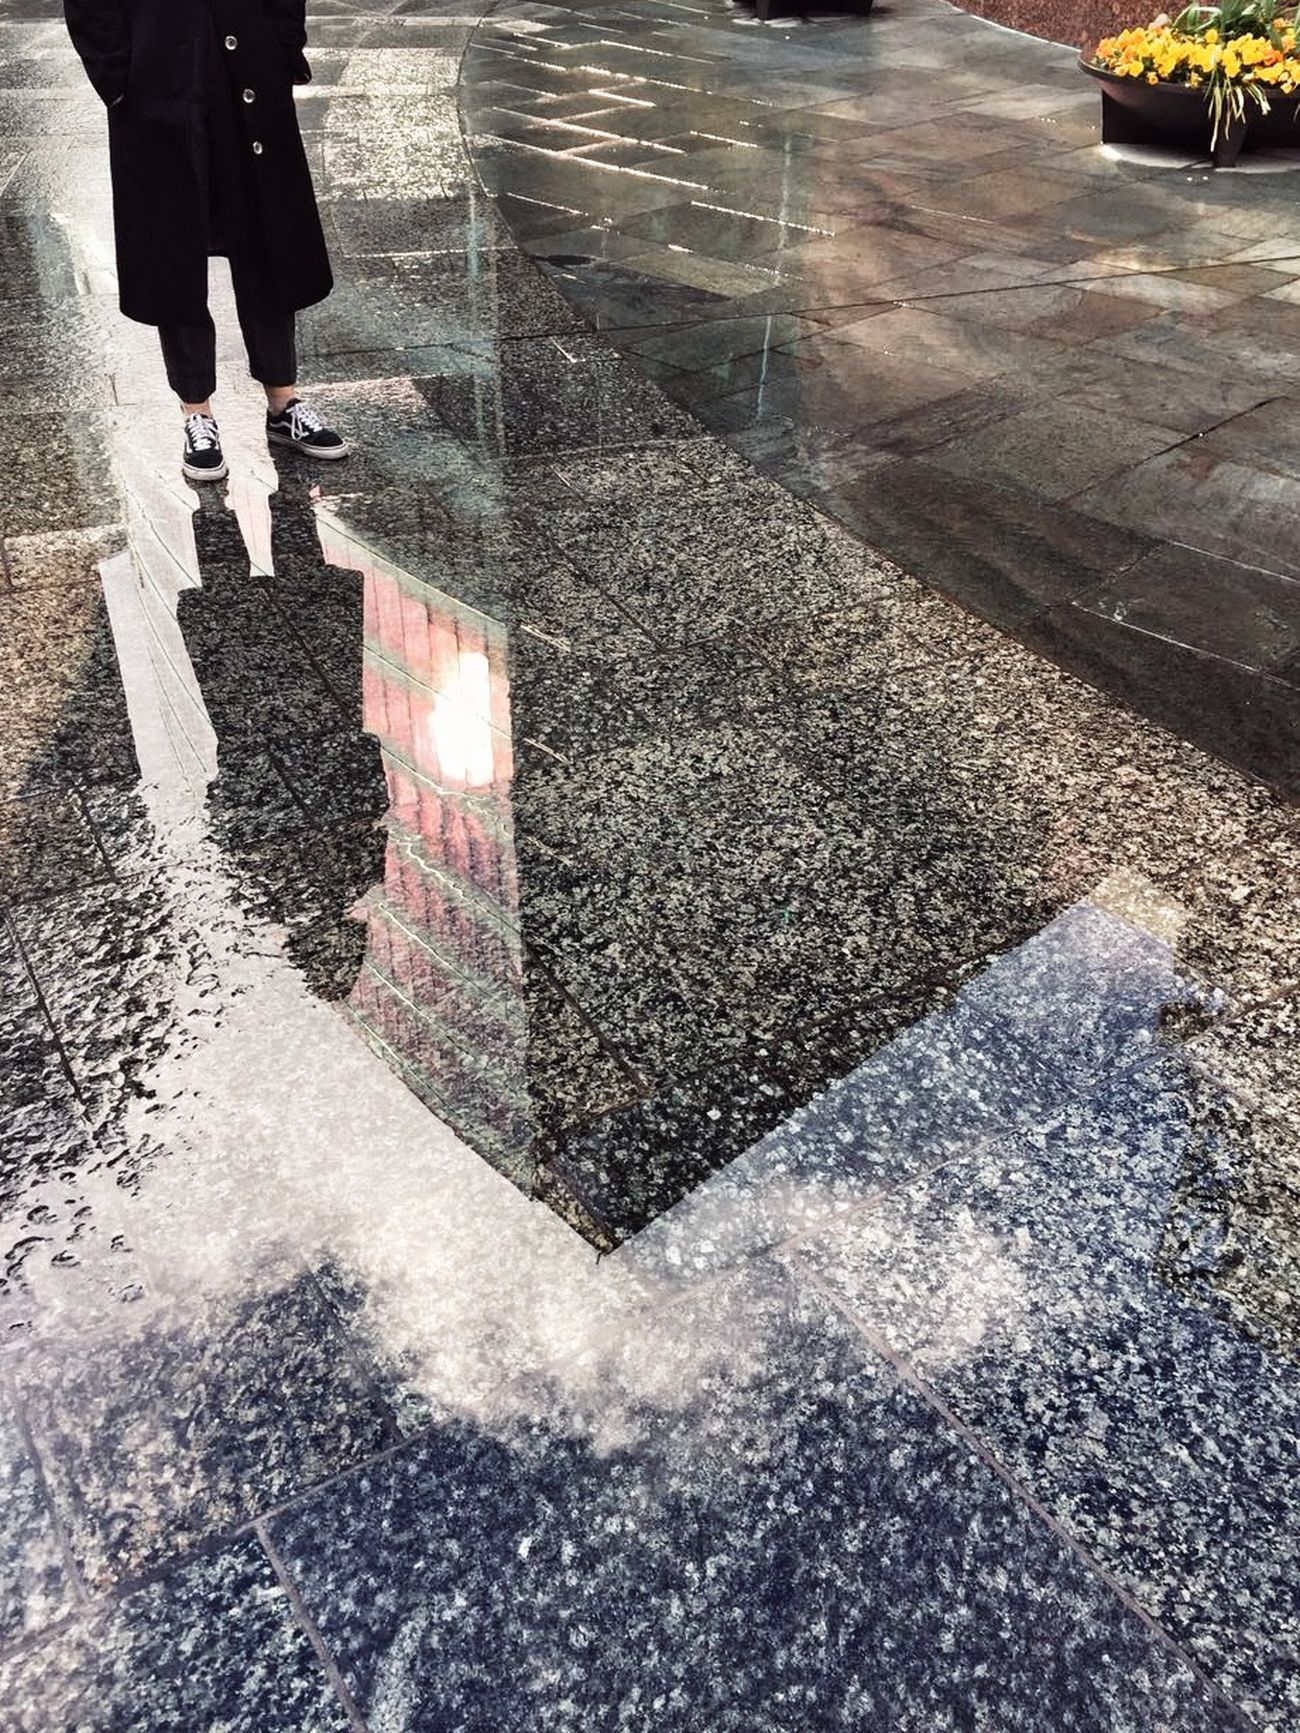 By best friend legs's reflection Reflection Water Wet Day Outdoors Shadow Human Leg Road One Person Real People Trip Take Photos Inghilterra Taking Photos Loveit Hello World Viaggio Traveling Photo Exploring Travel Photography Neighborhood Map The Street Photographer - 2017 EyeEm Awards The Architect - 2017 EyeEm Awards EyeEmNewHere